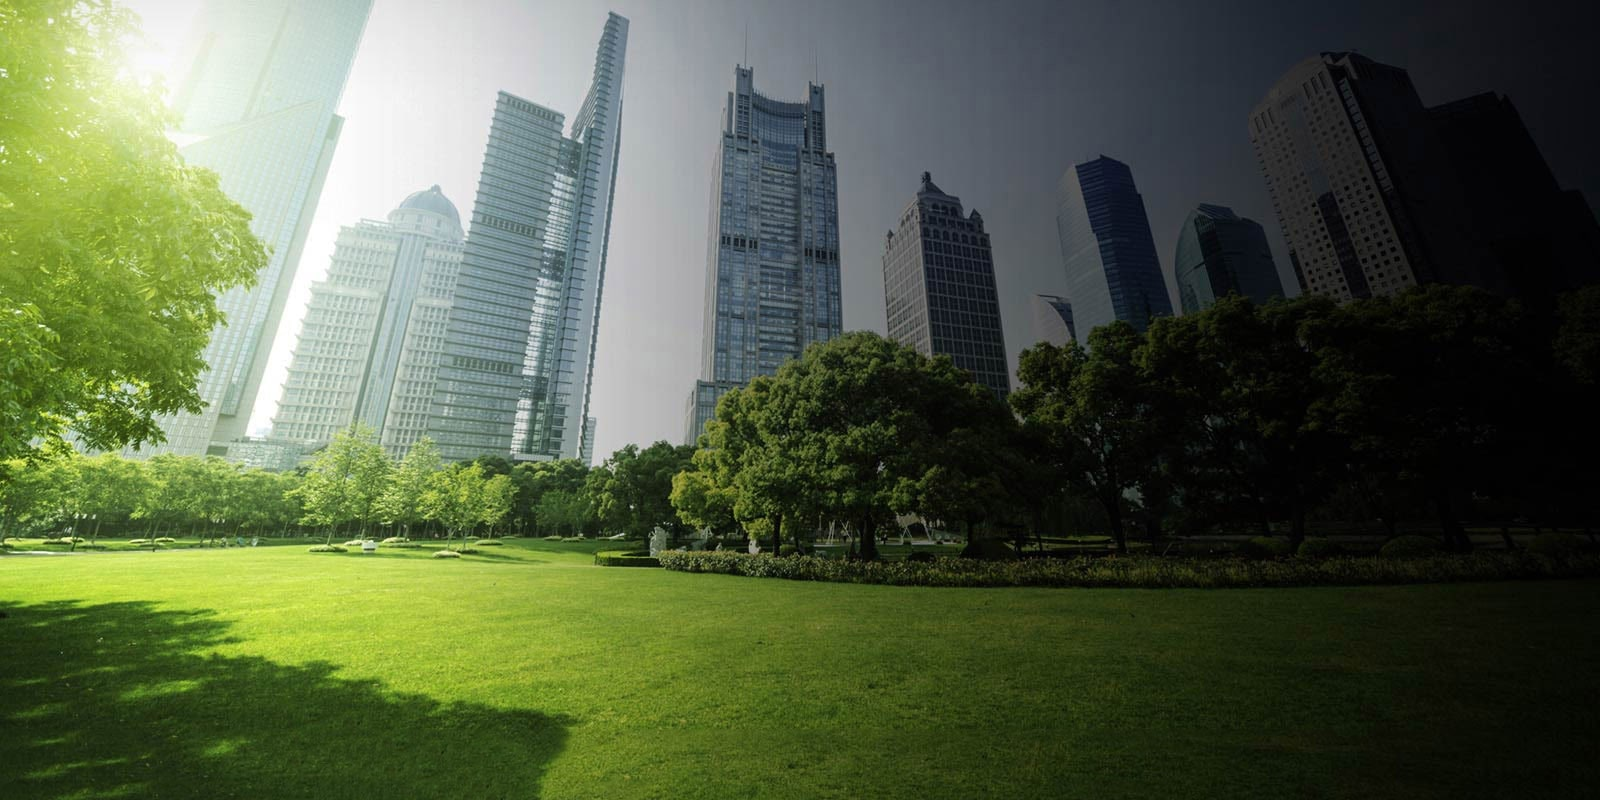 Park Land Surrounded by Skyscrapers